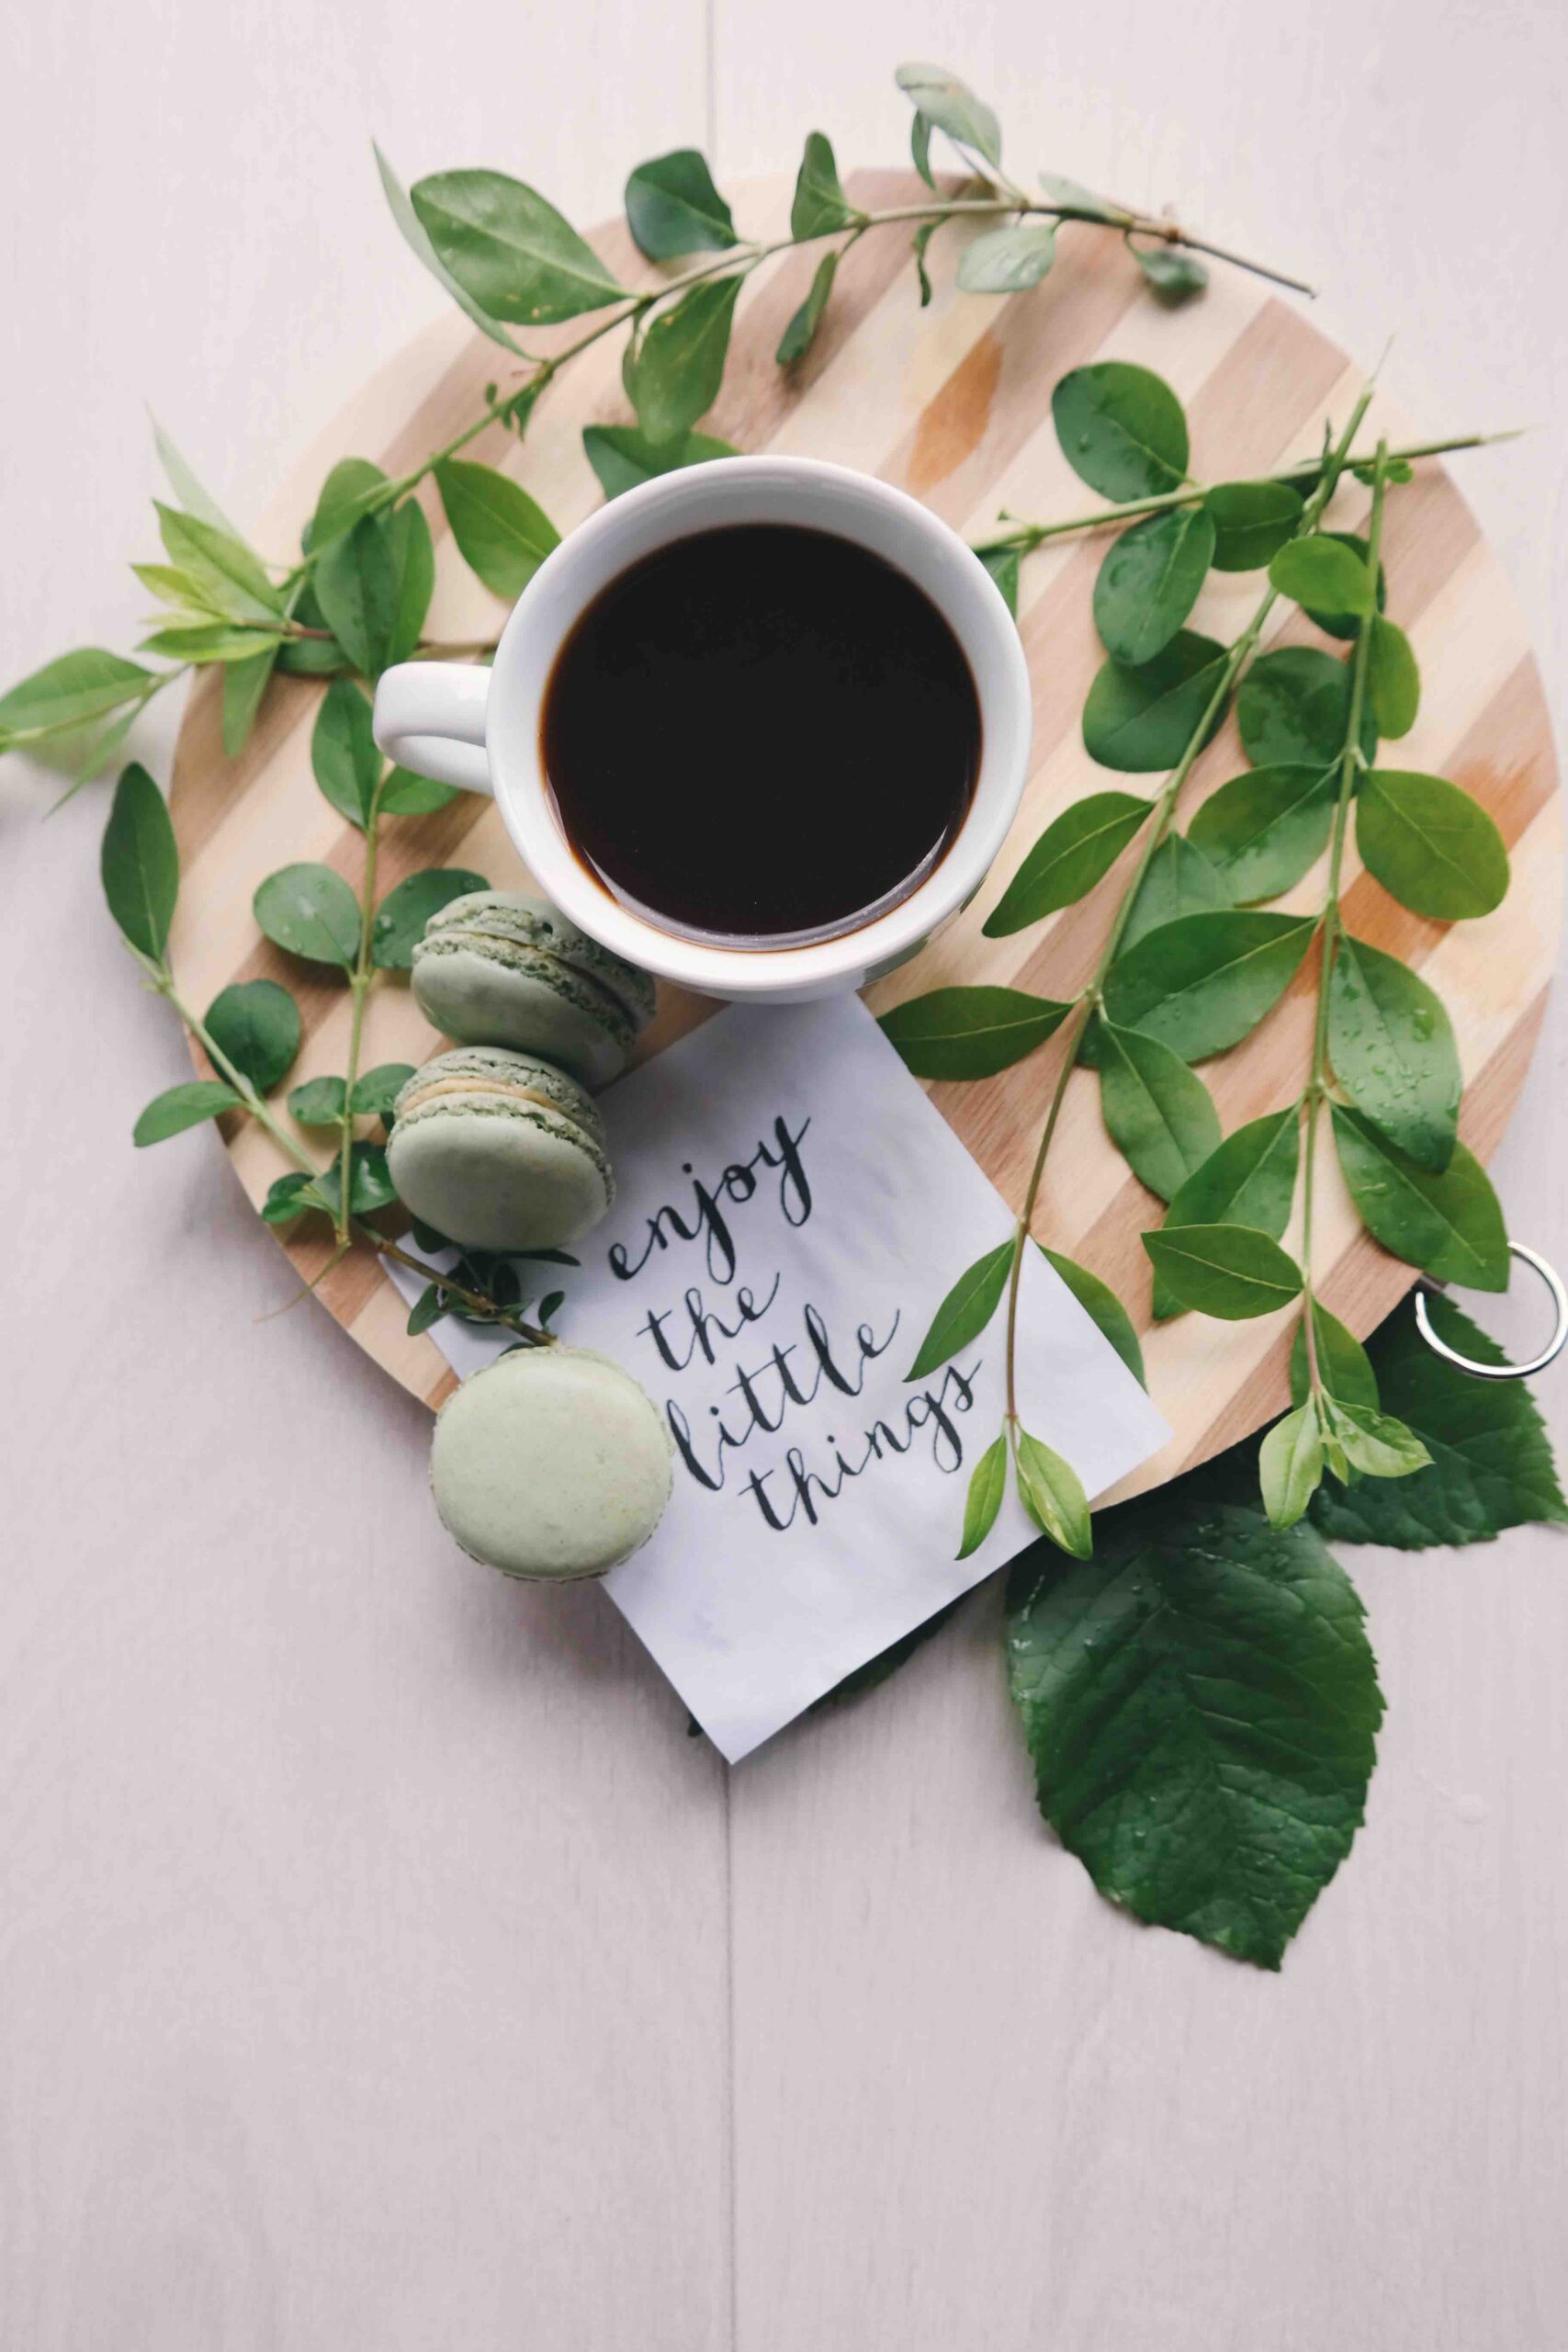 black coffee on a wooden board with leaves around and green acaroons next to a piece of paper with itallic writing enjoy the little things